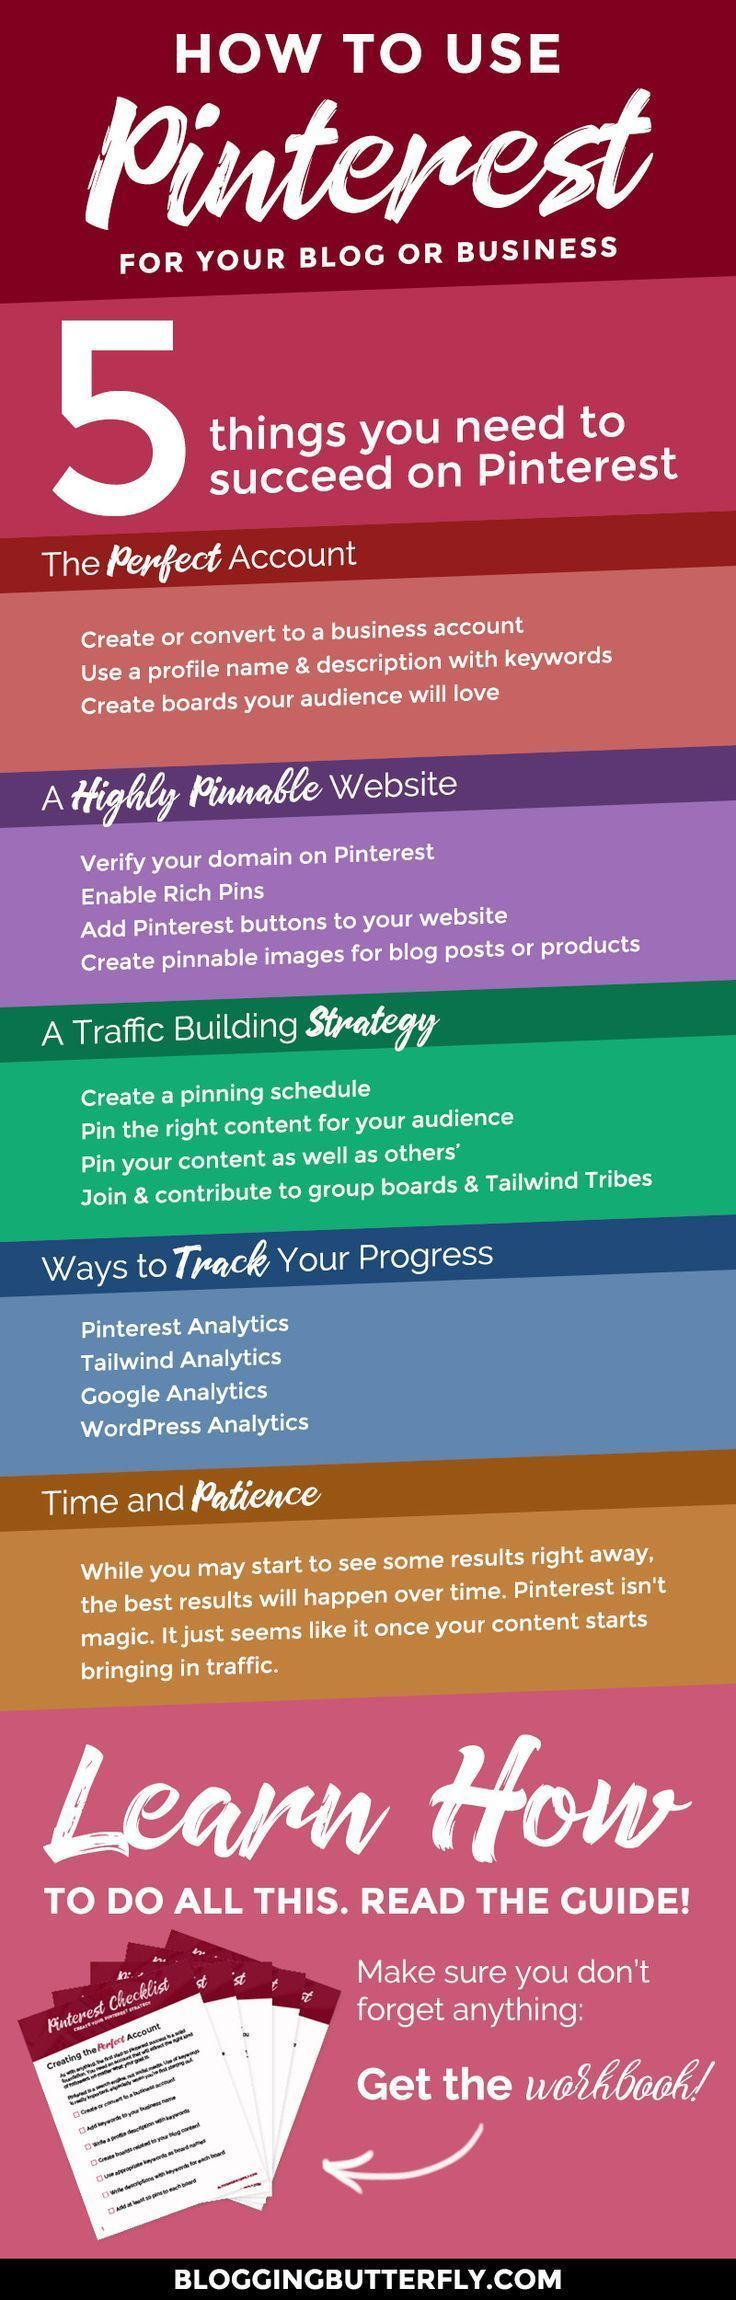 Pinterest For Bloggers How To Use Pinterest To Drive Traffic To Your Blog Pinterest Marketing Strategy Blog Tips Pinterest For Business